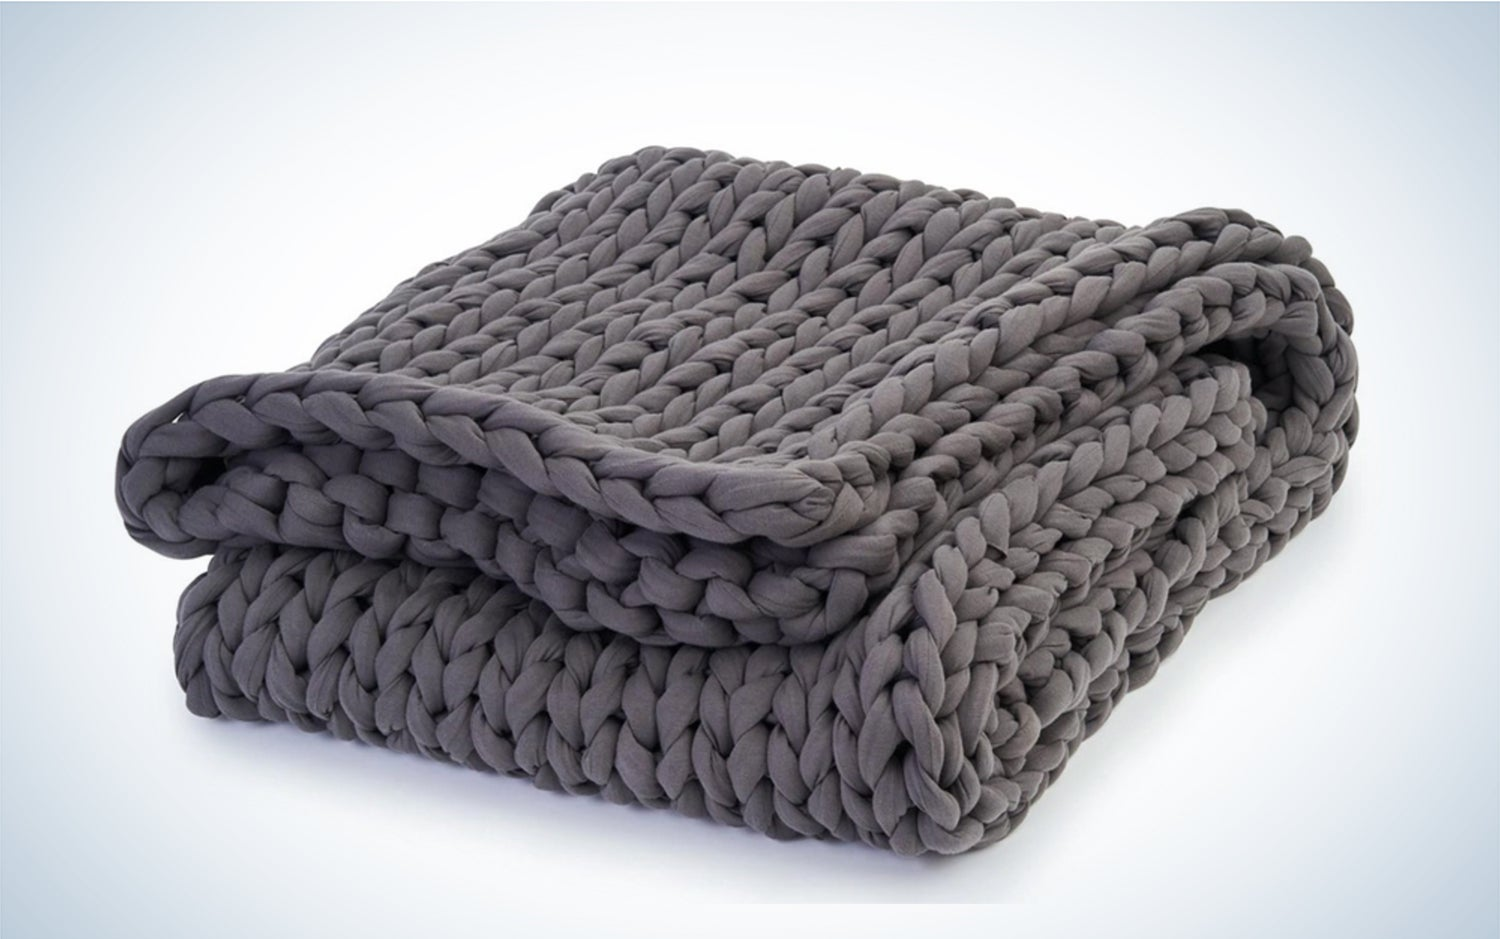 a gray blanket on a white background